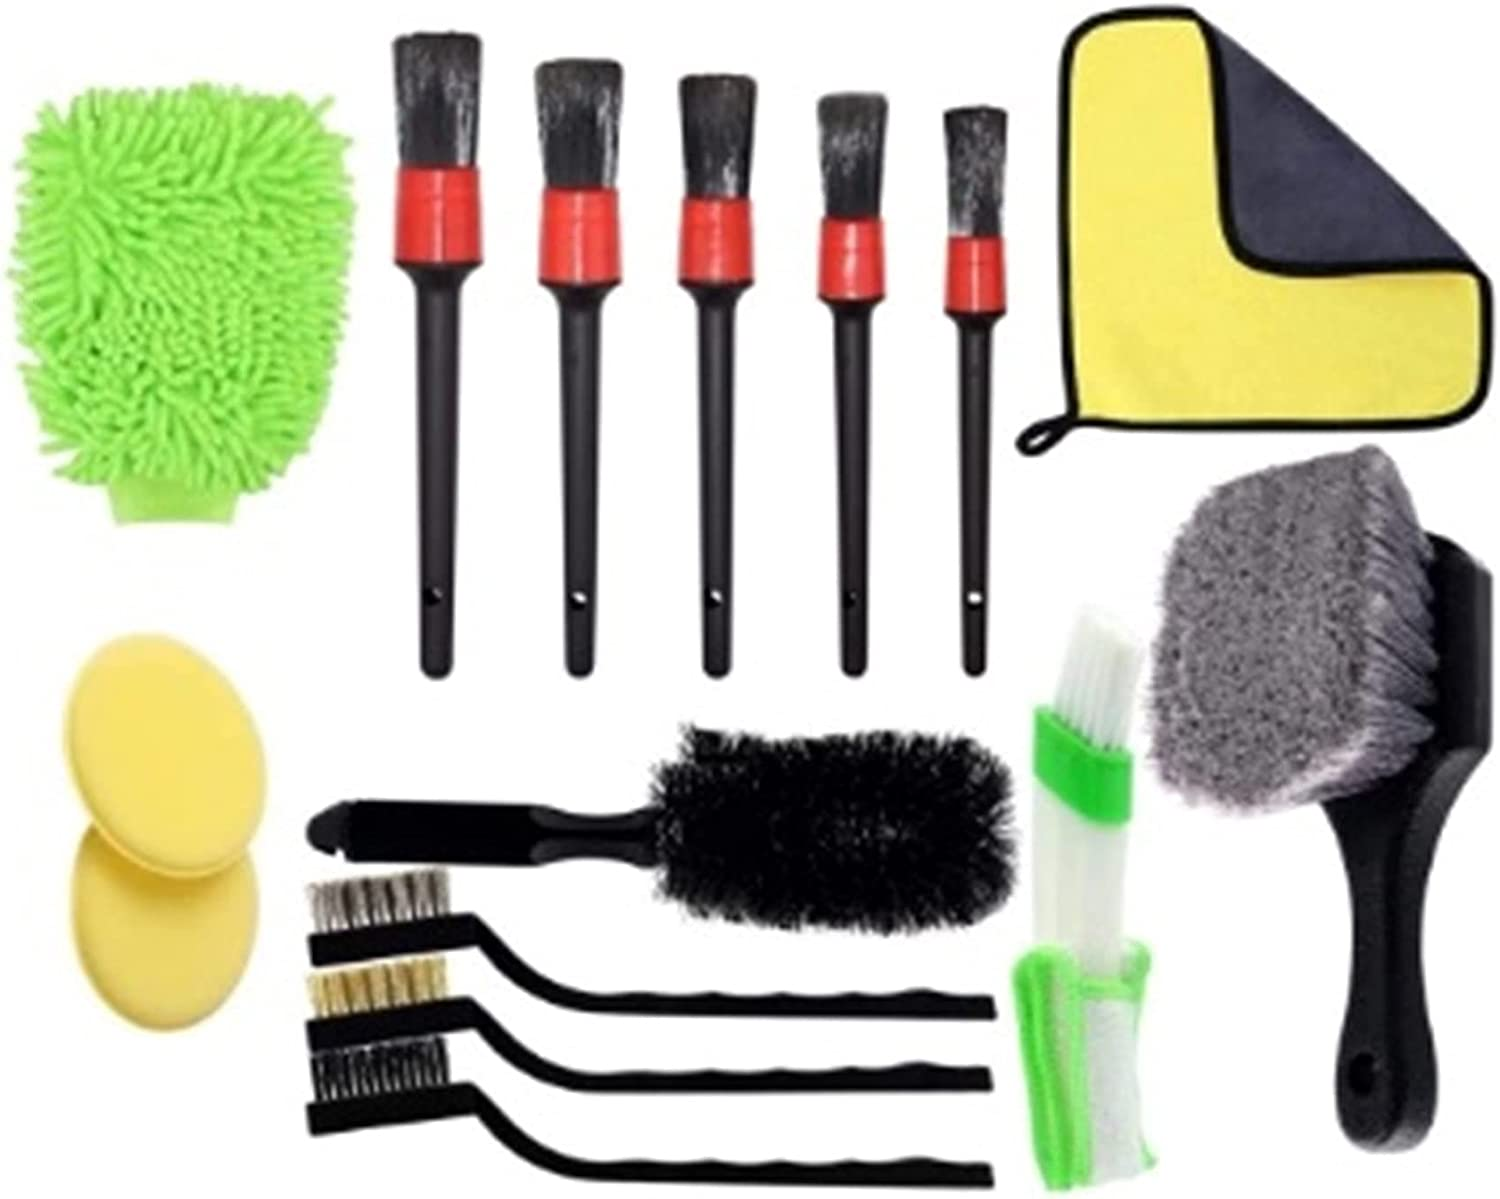 YXIUER 15PCS car Detail Brush kit Including Wire Ranking Max 40% OFF TOP2 B